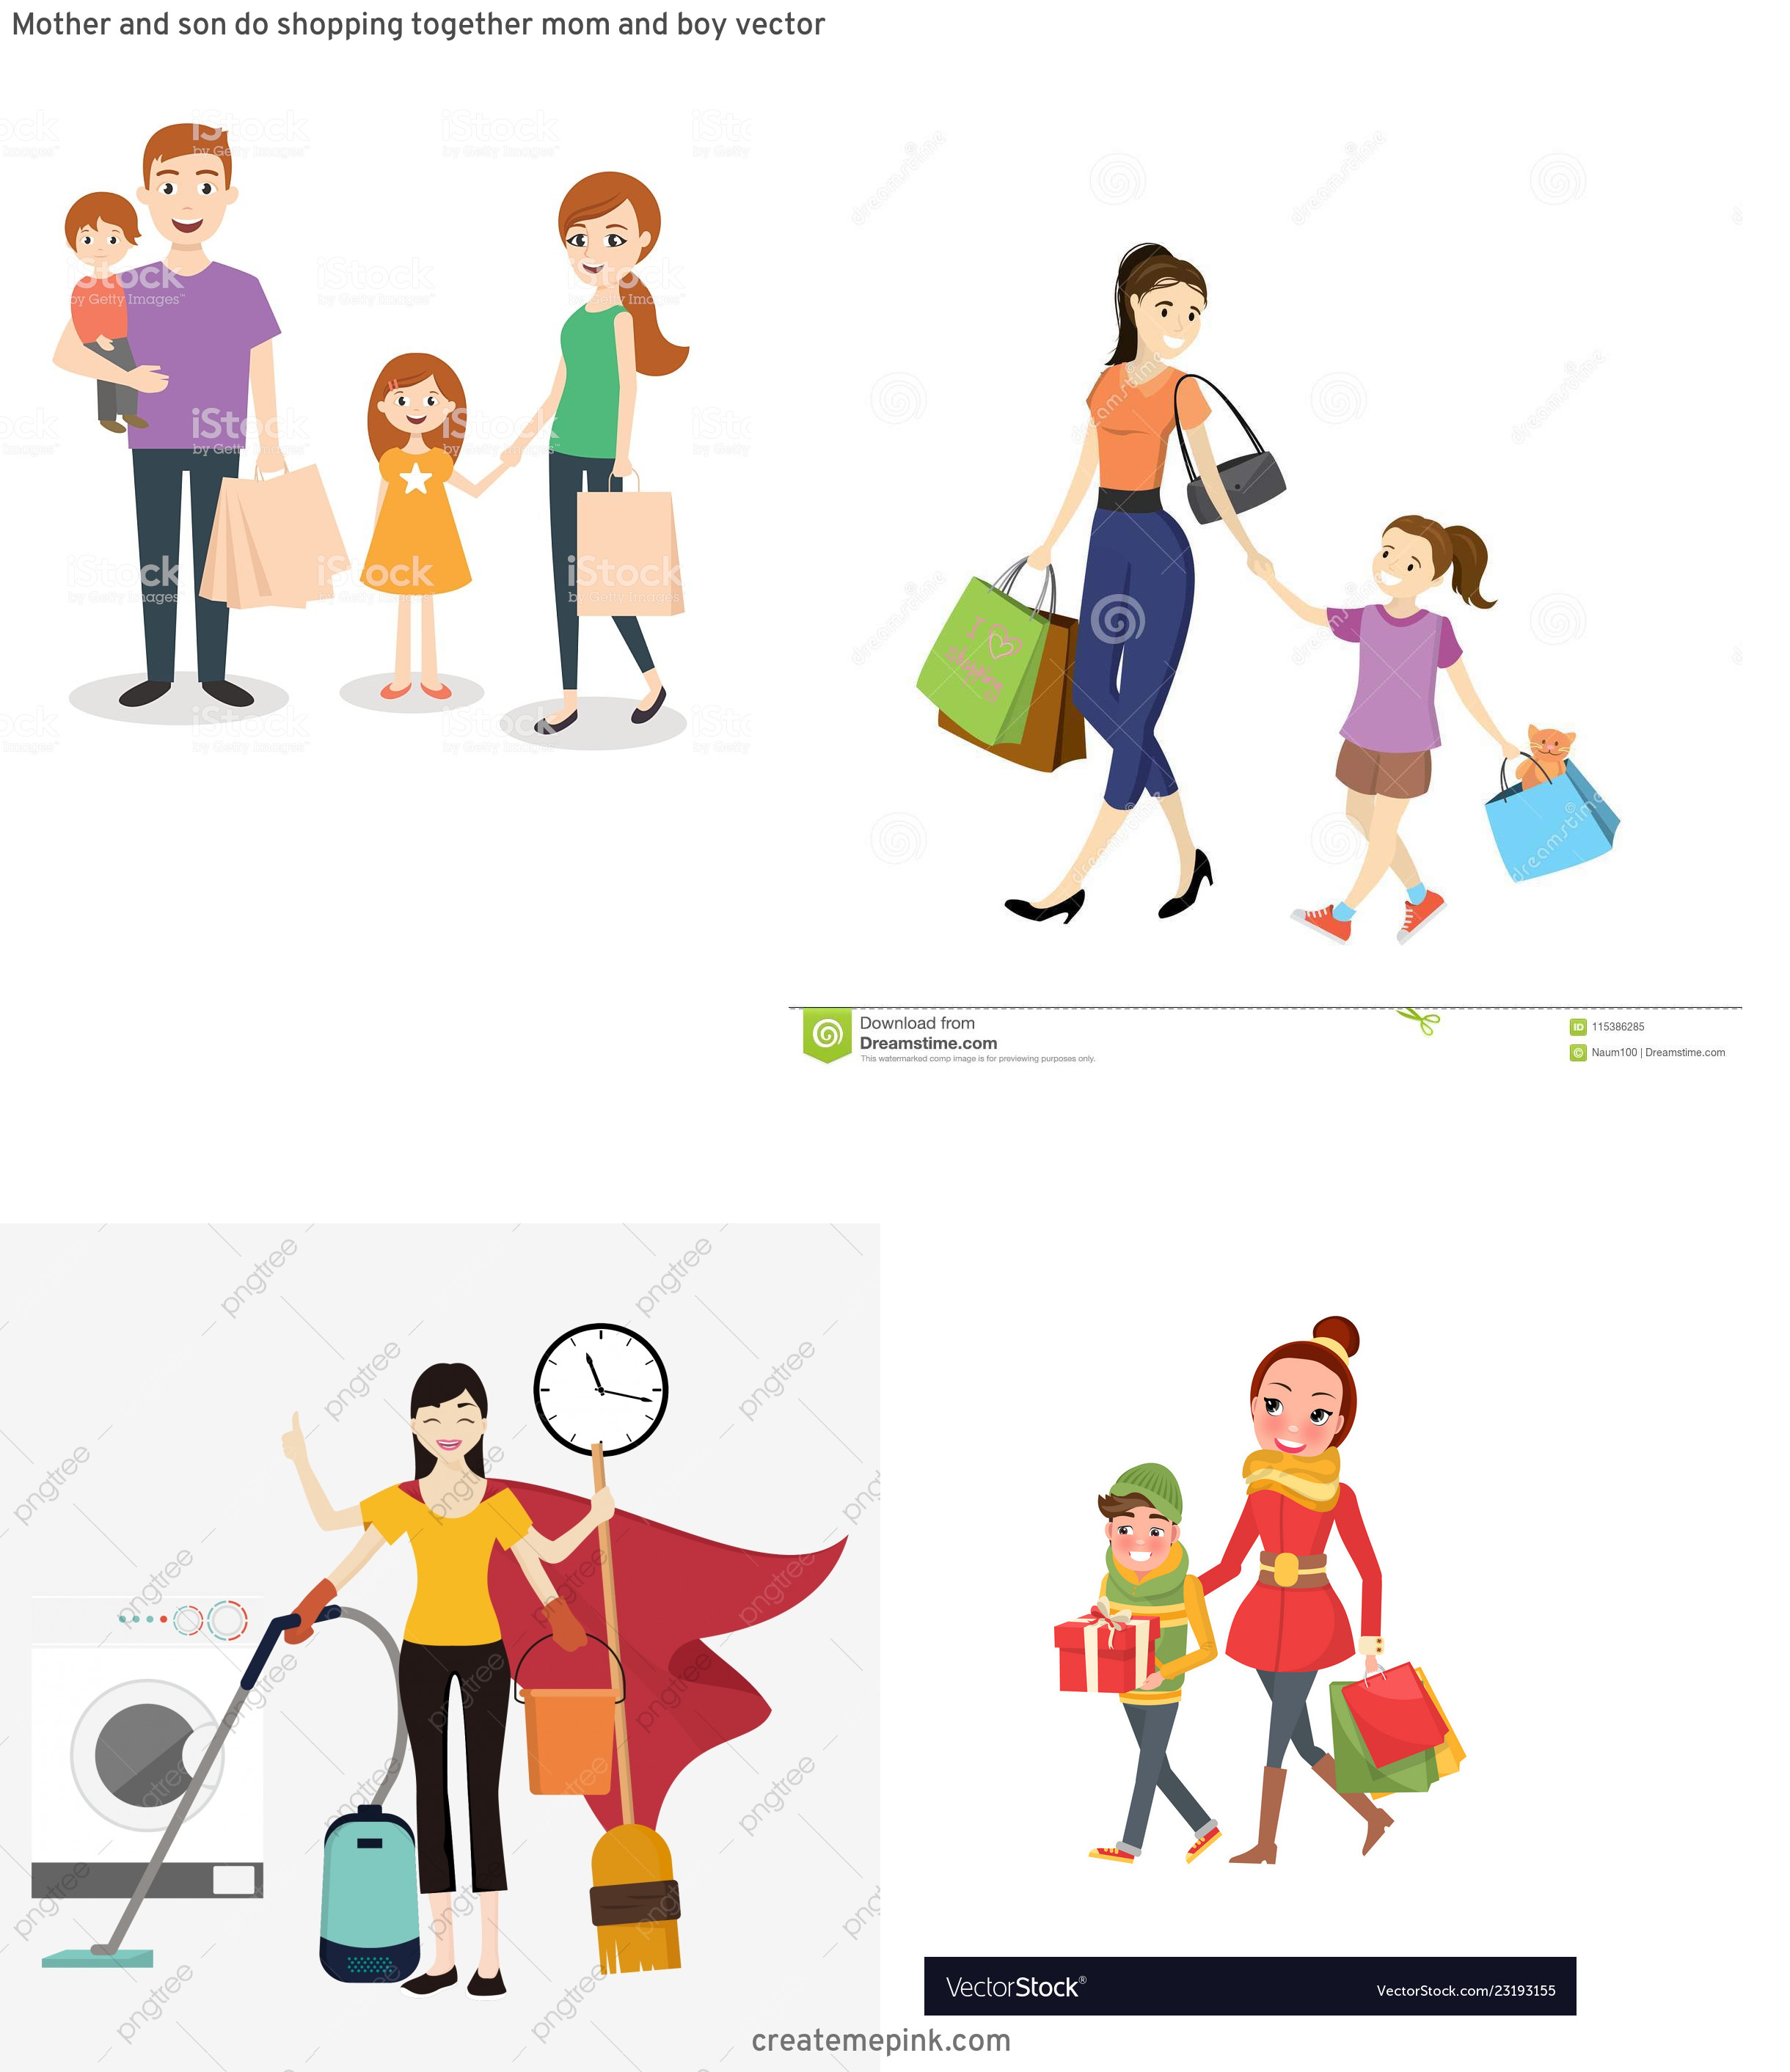 Shopping Vector Of Mom: Mother And Son Do Shopping Together Mom And Boy Vector